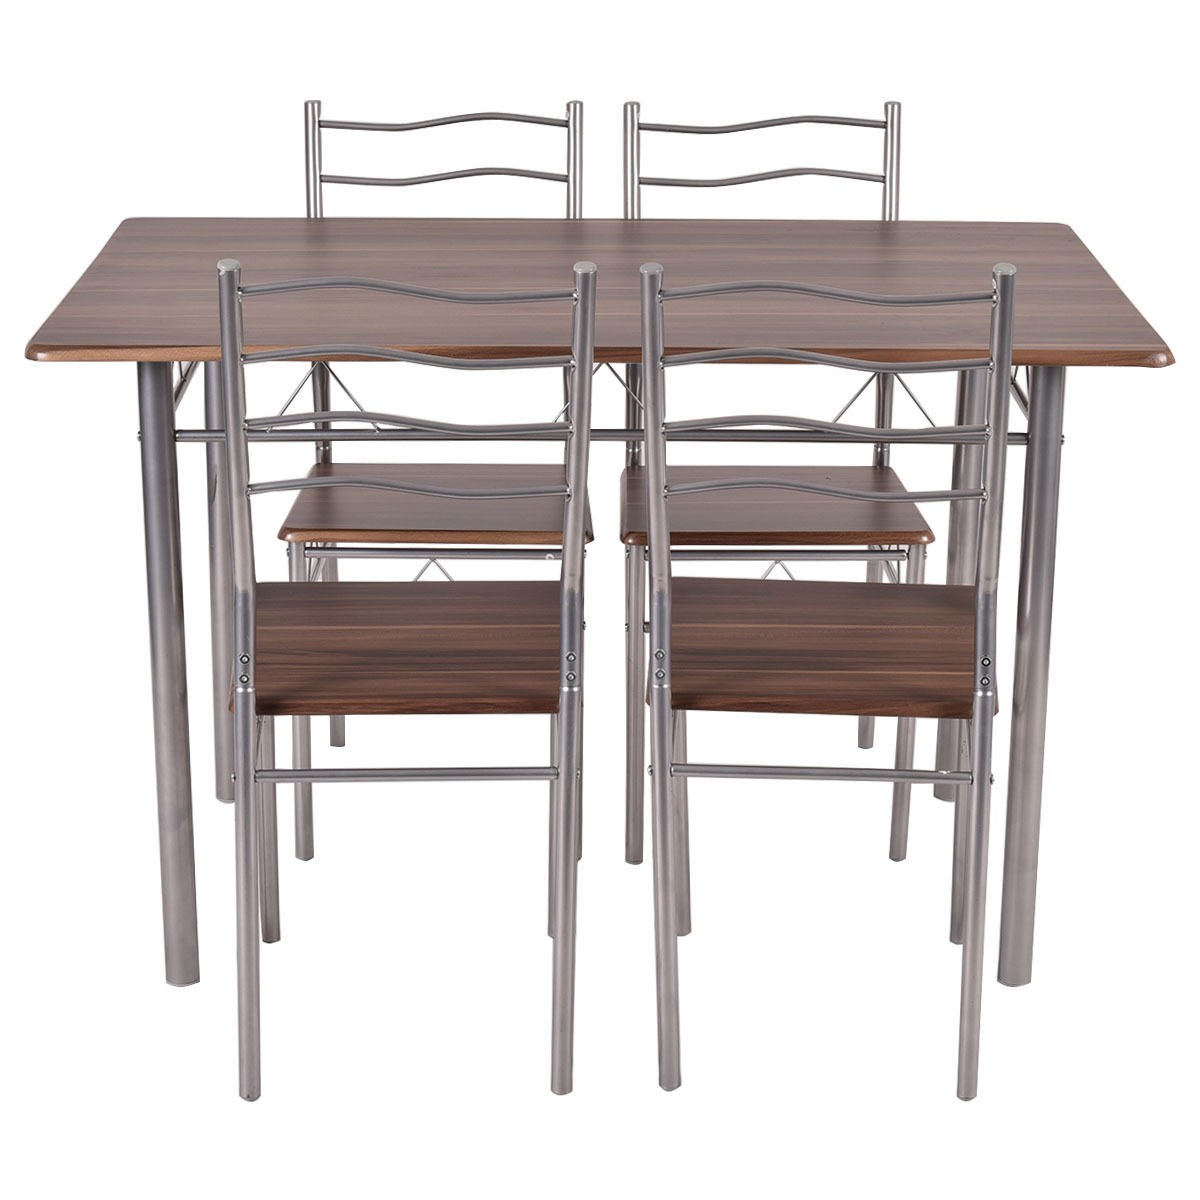 Wood And Metal Dining Chairs Set 5 Piece Dining Wood Metal Table And 4 Chairs Kitchen